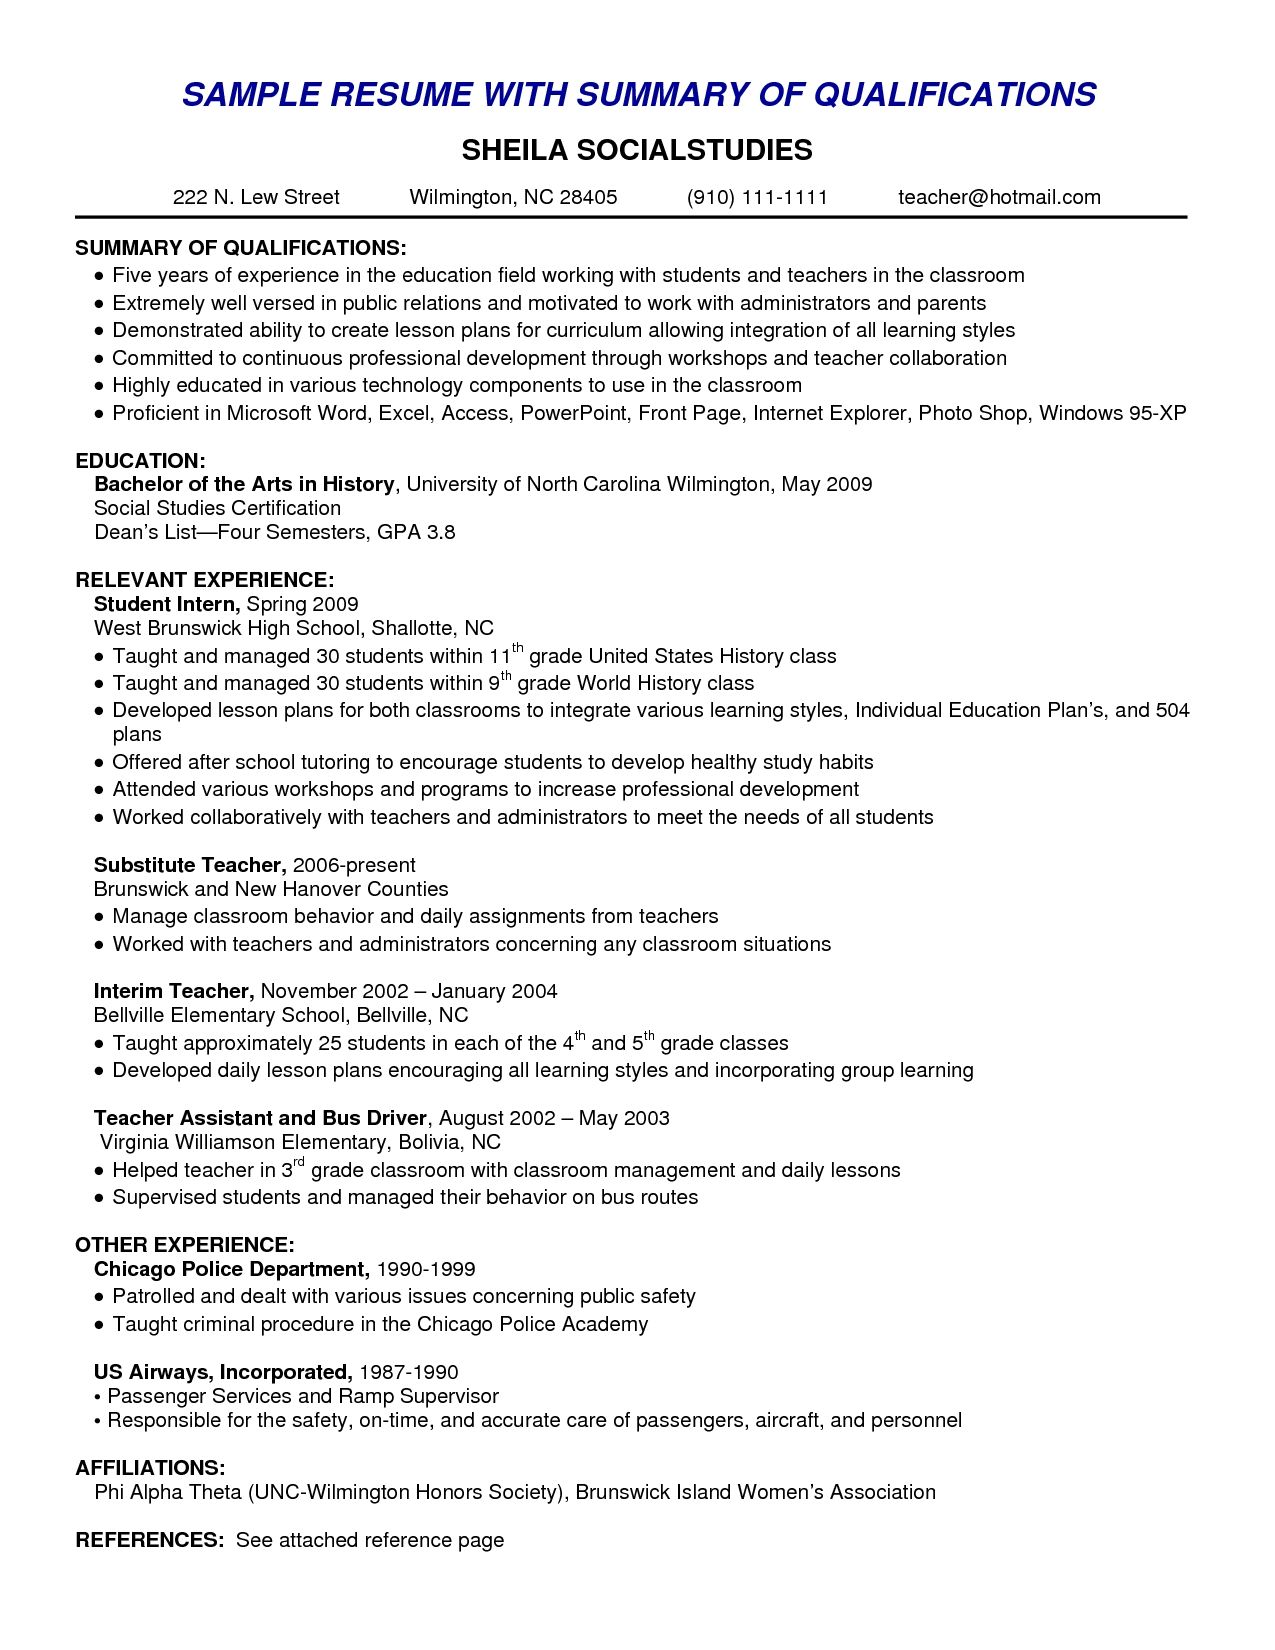 Sample Resume Skills Resume Skills Summary Examples Example Of Skills Summary For